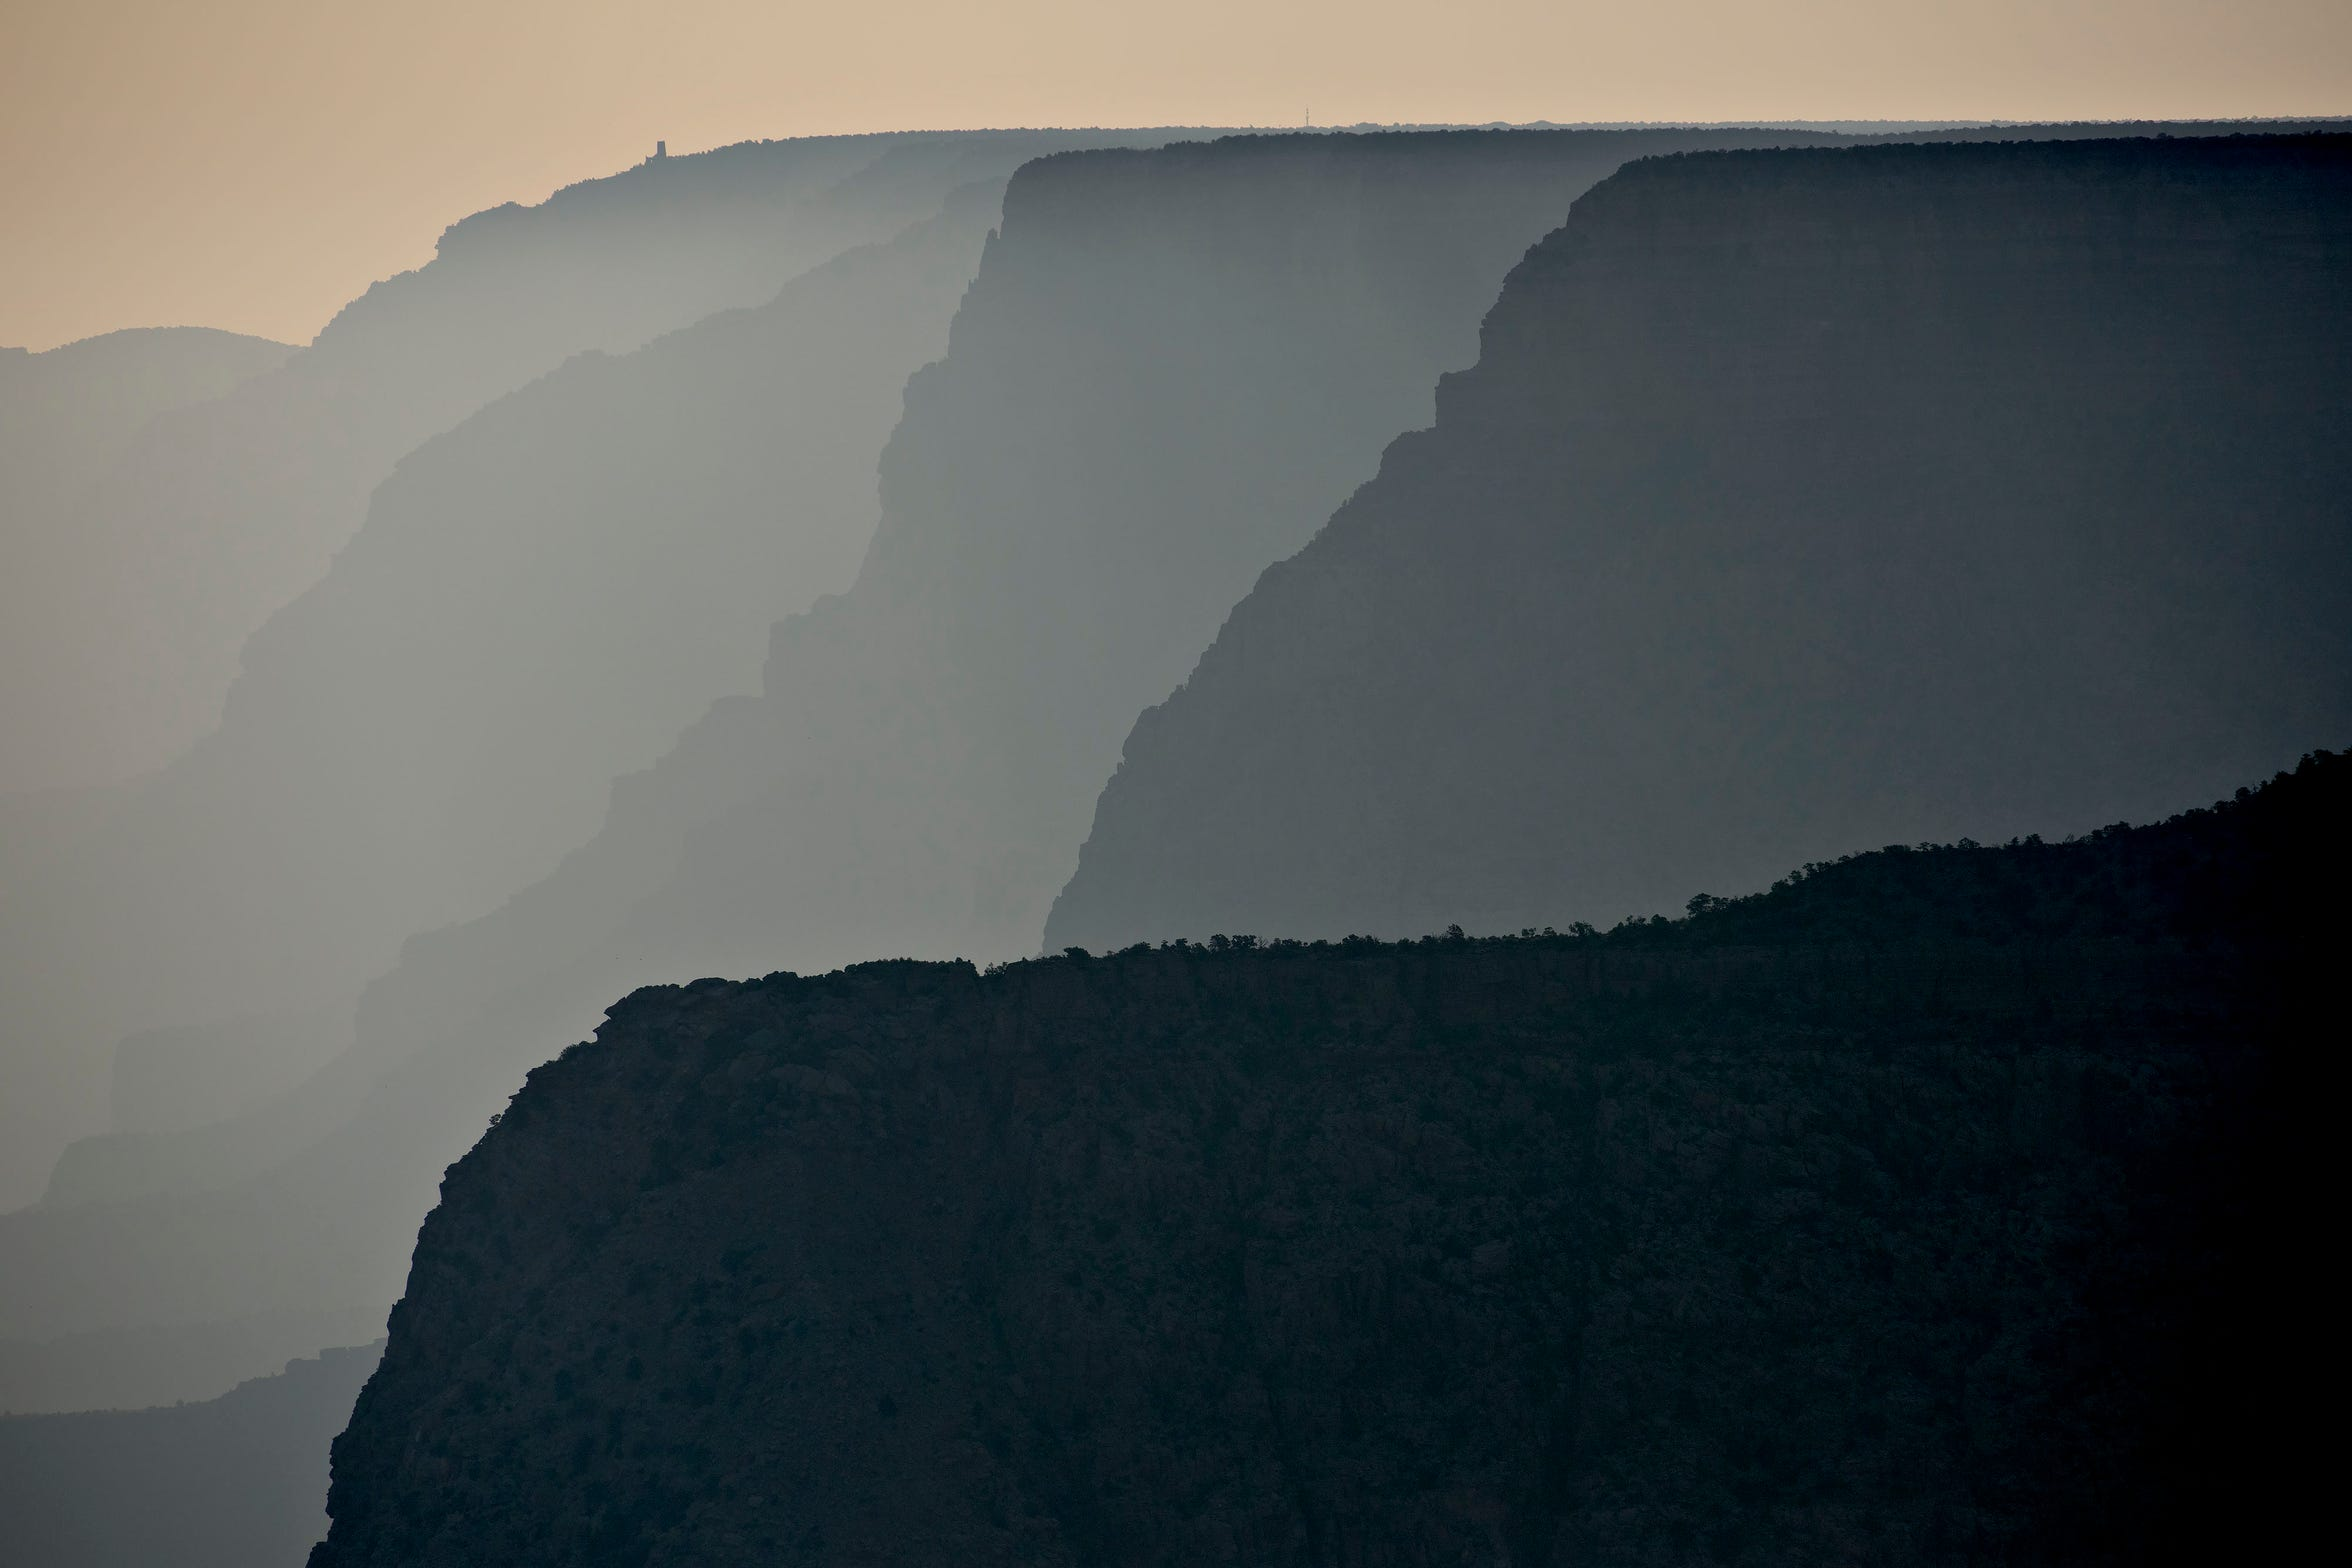 Smoke from a nearby forest fire is illuminated by the rising sun at Grand Canyon National Park on June 26, 2015.